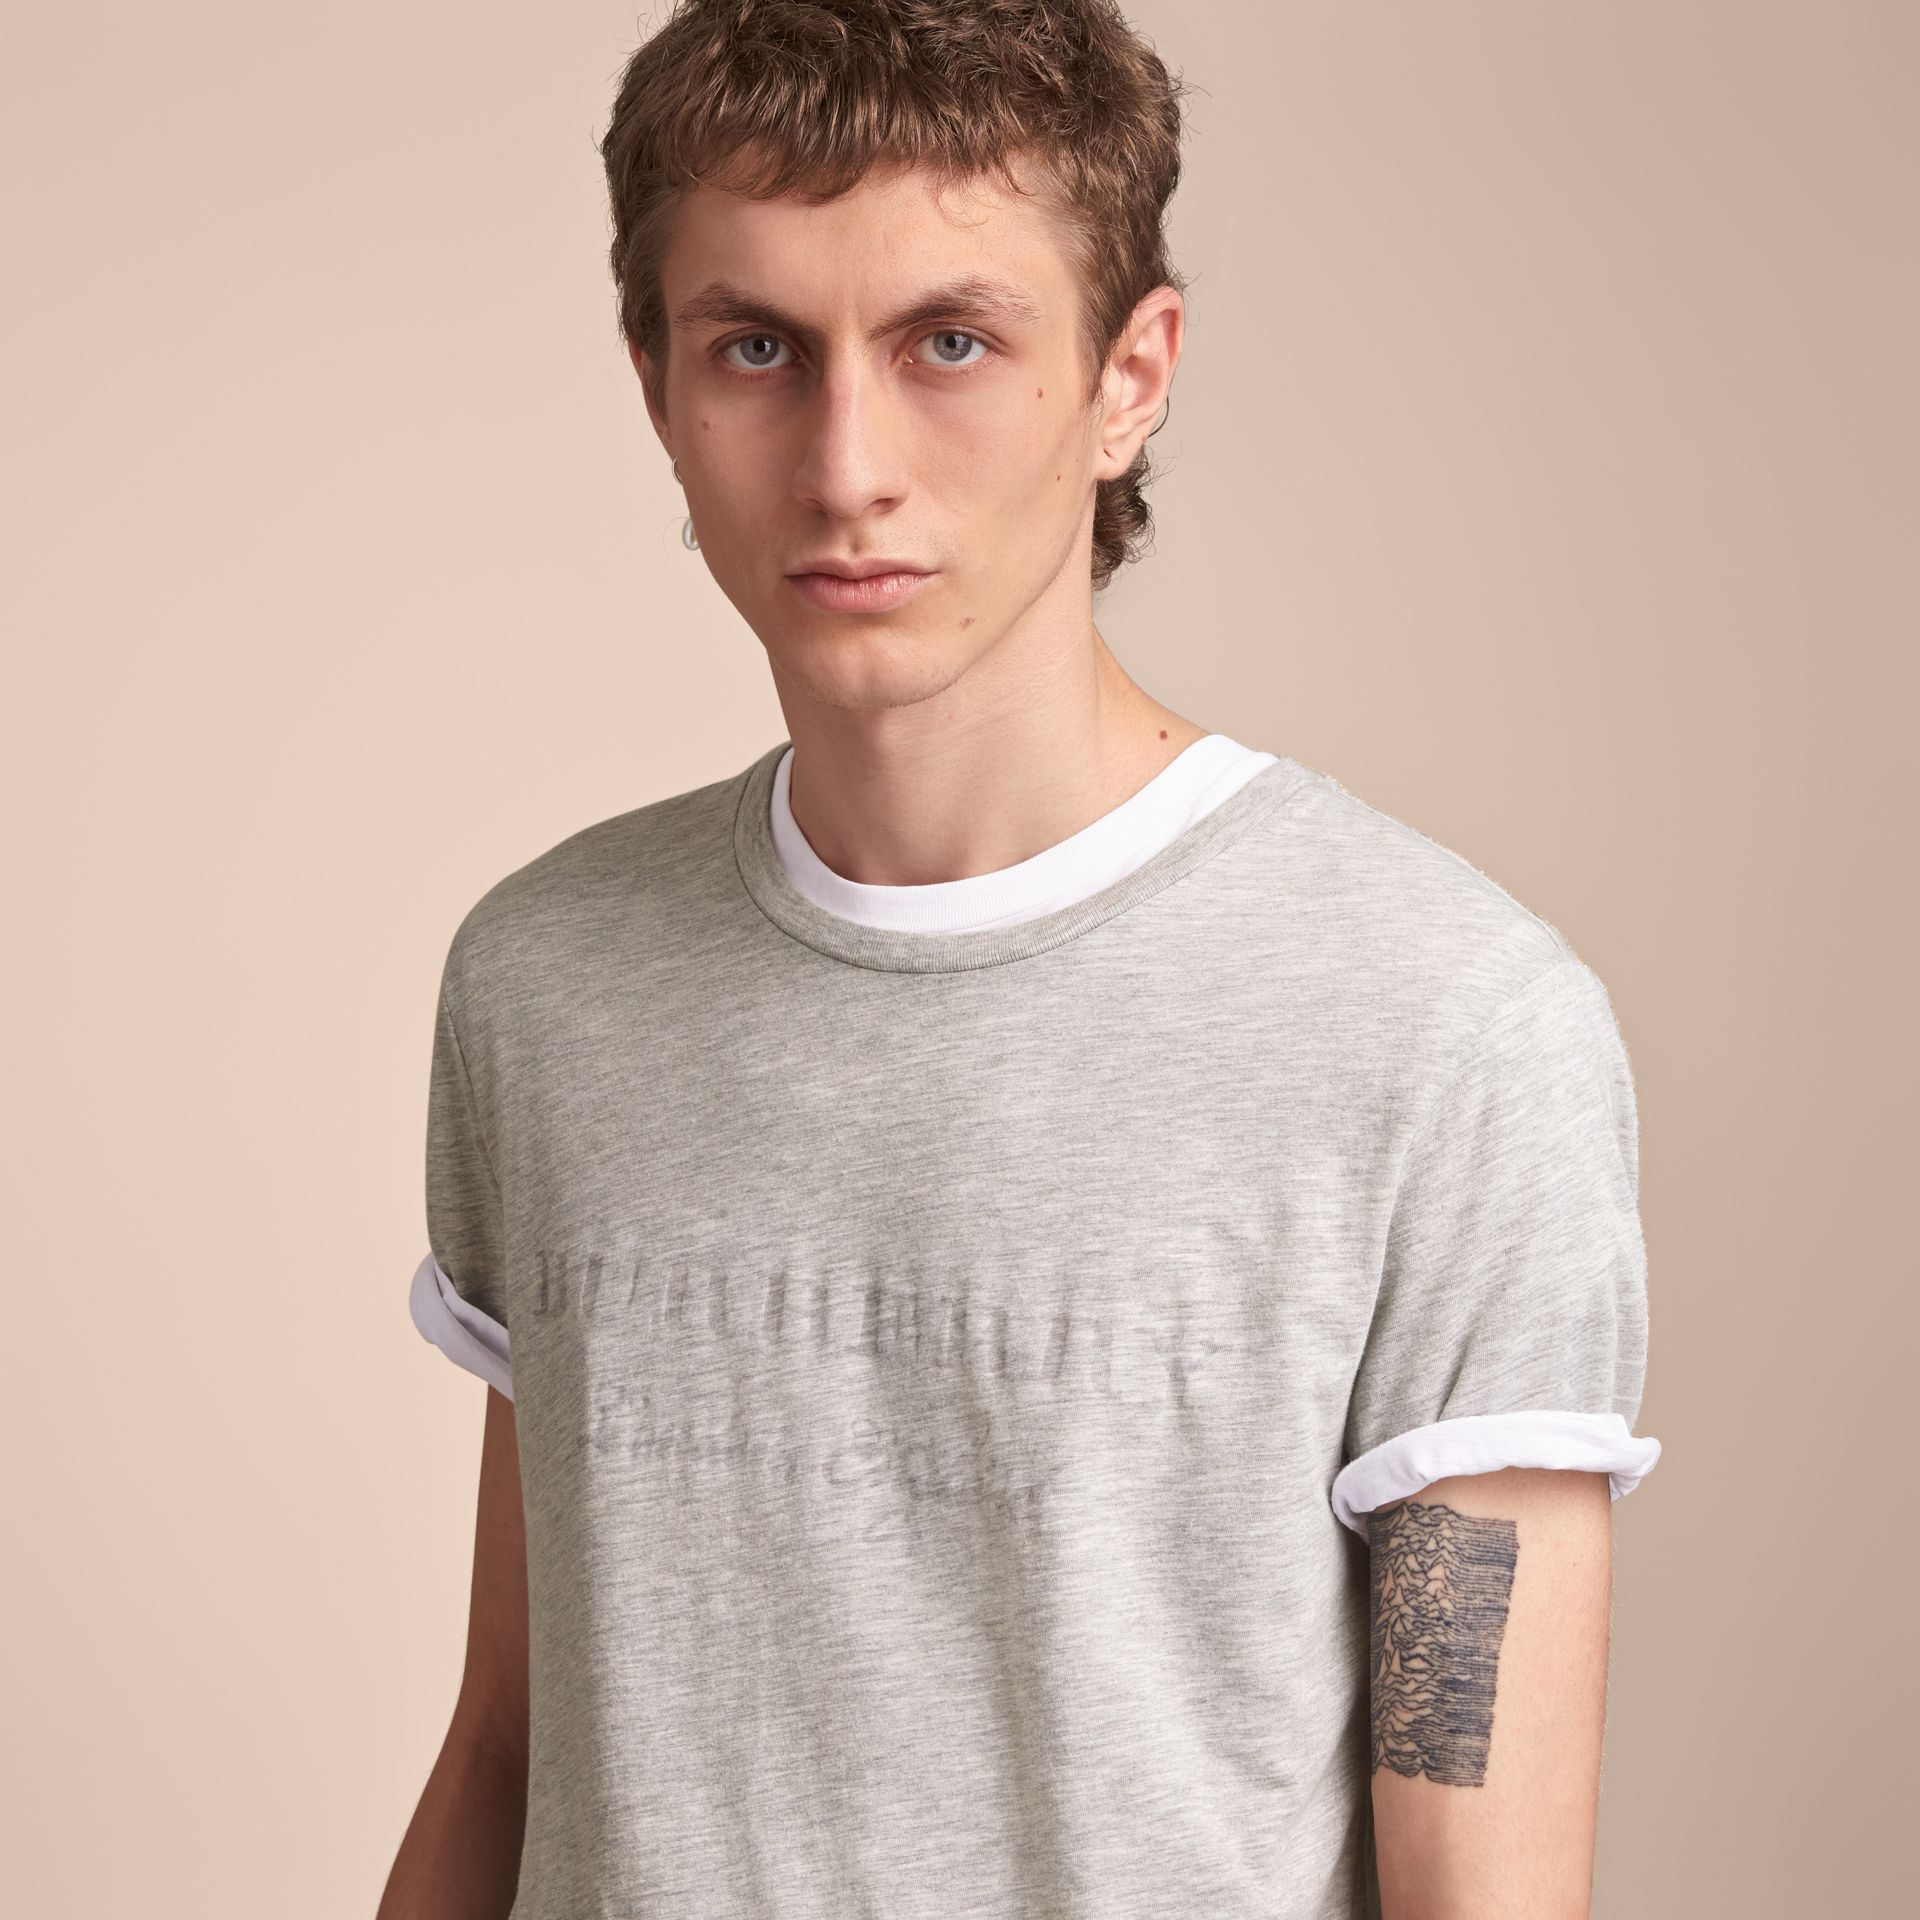 Contrast Motif Cotton Blend T-shirt Pale Grey Melange - gallery image 5